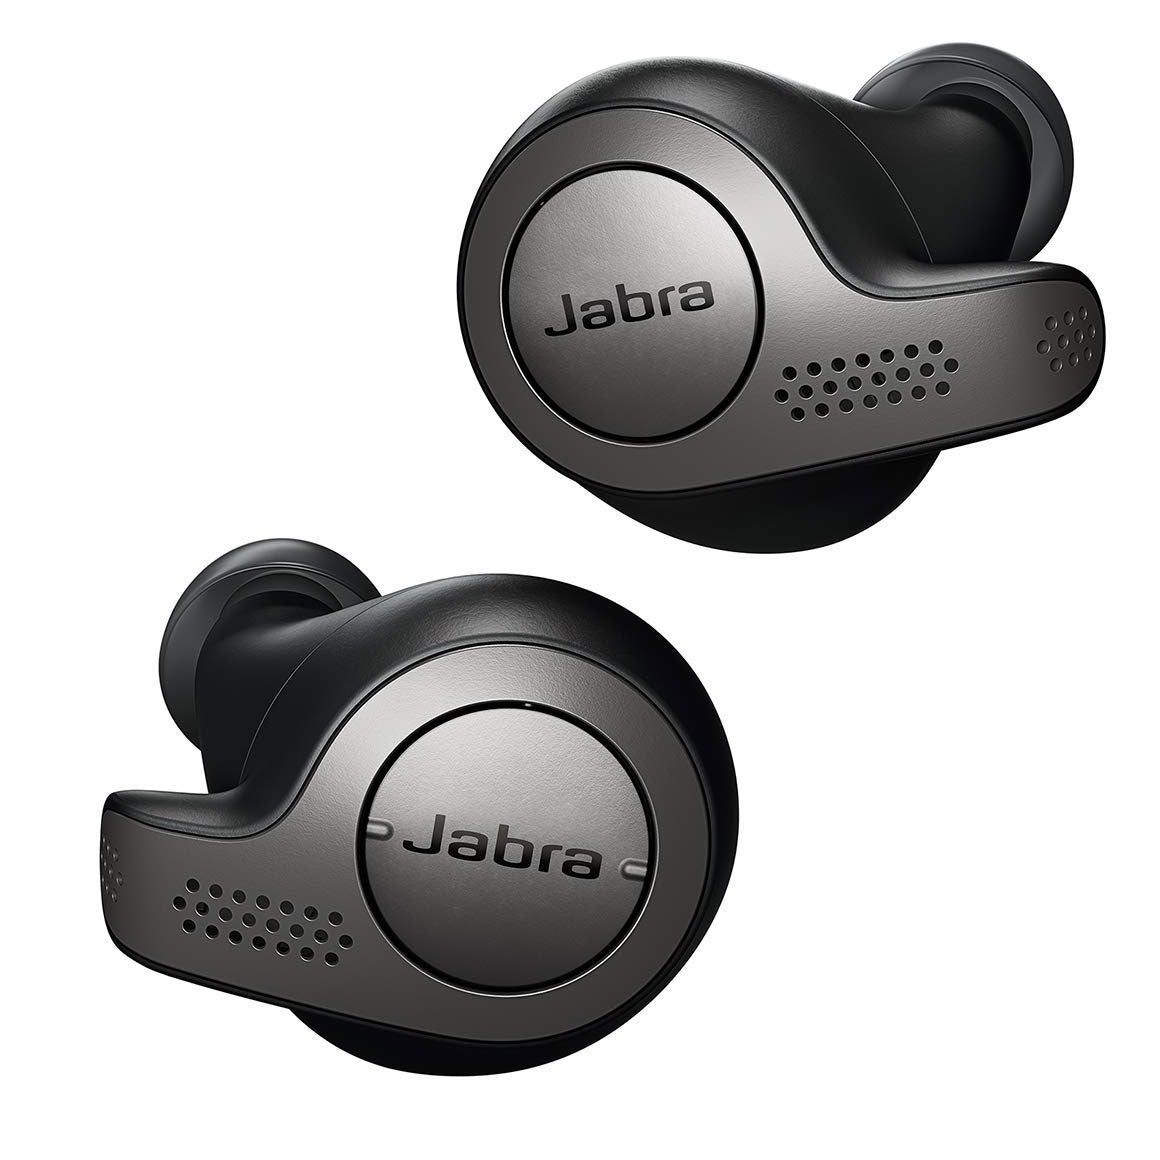 Jabra - Elite 65tvs competitors